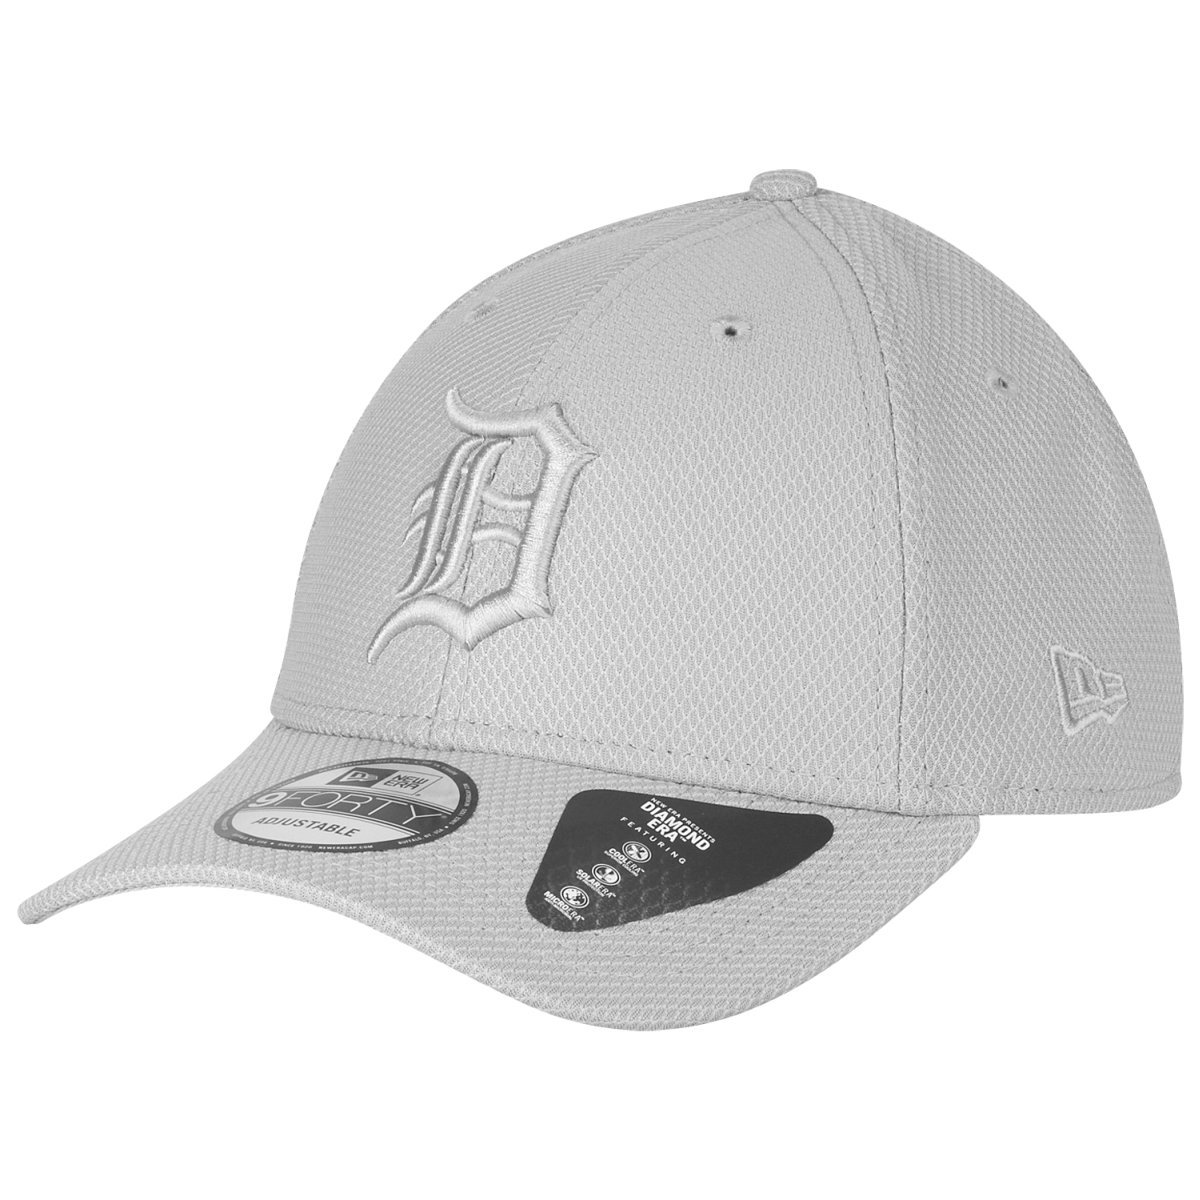 A NEW ERA ERA Era Gorra 9Forty Diamond TigersEra de Beisbol